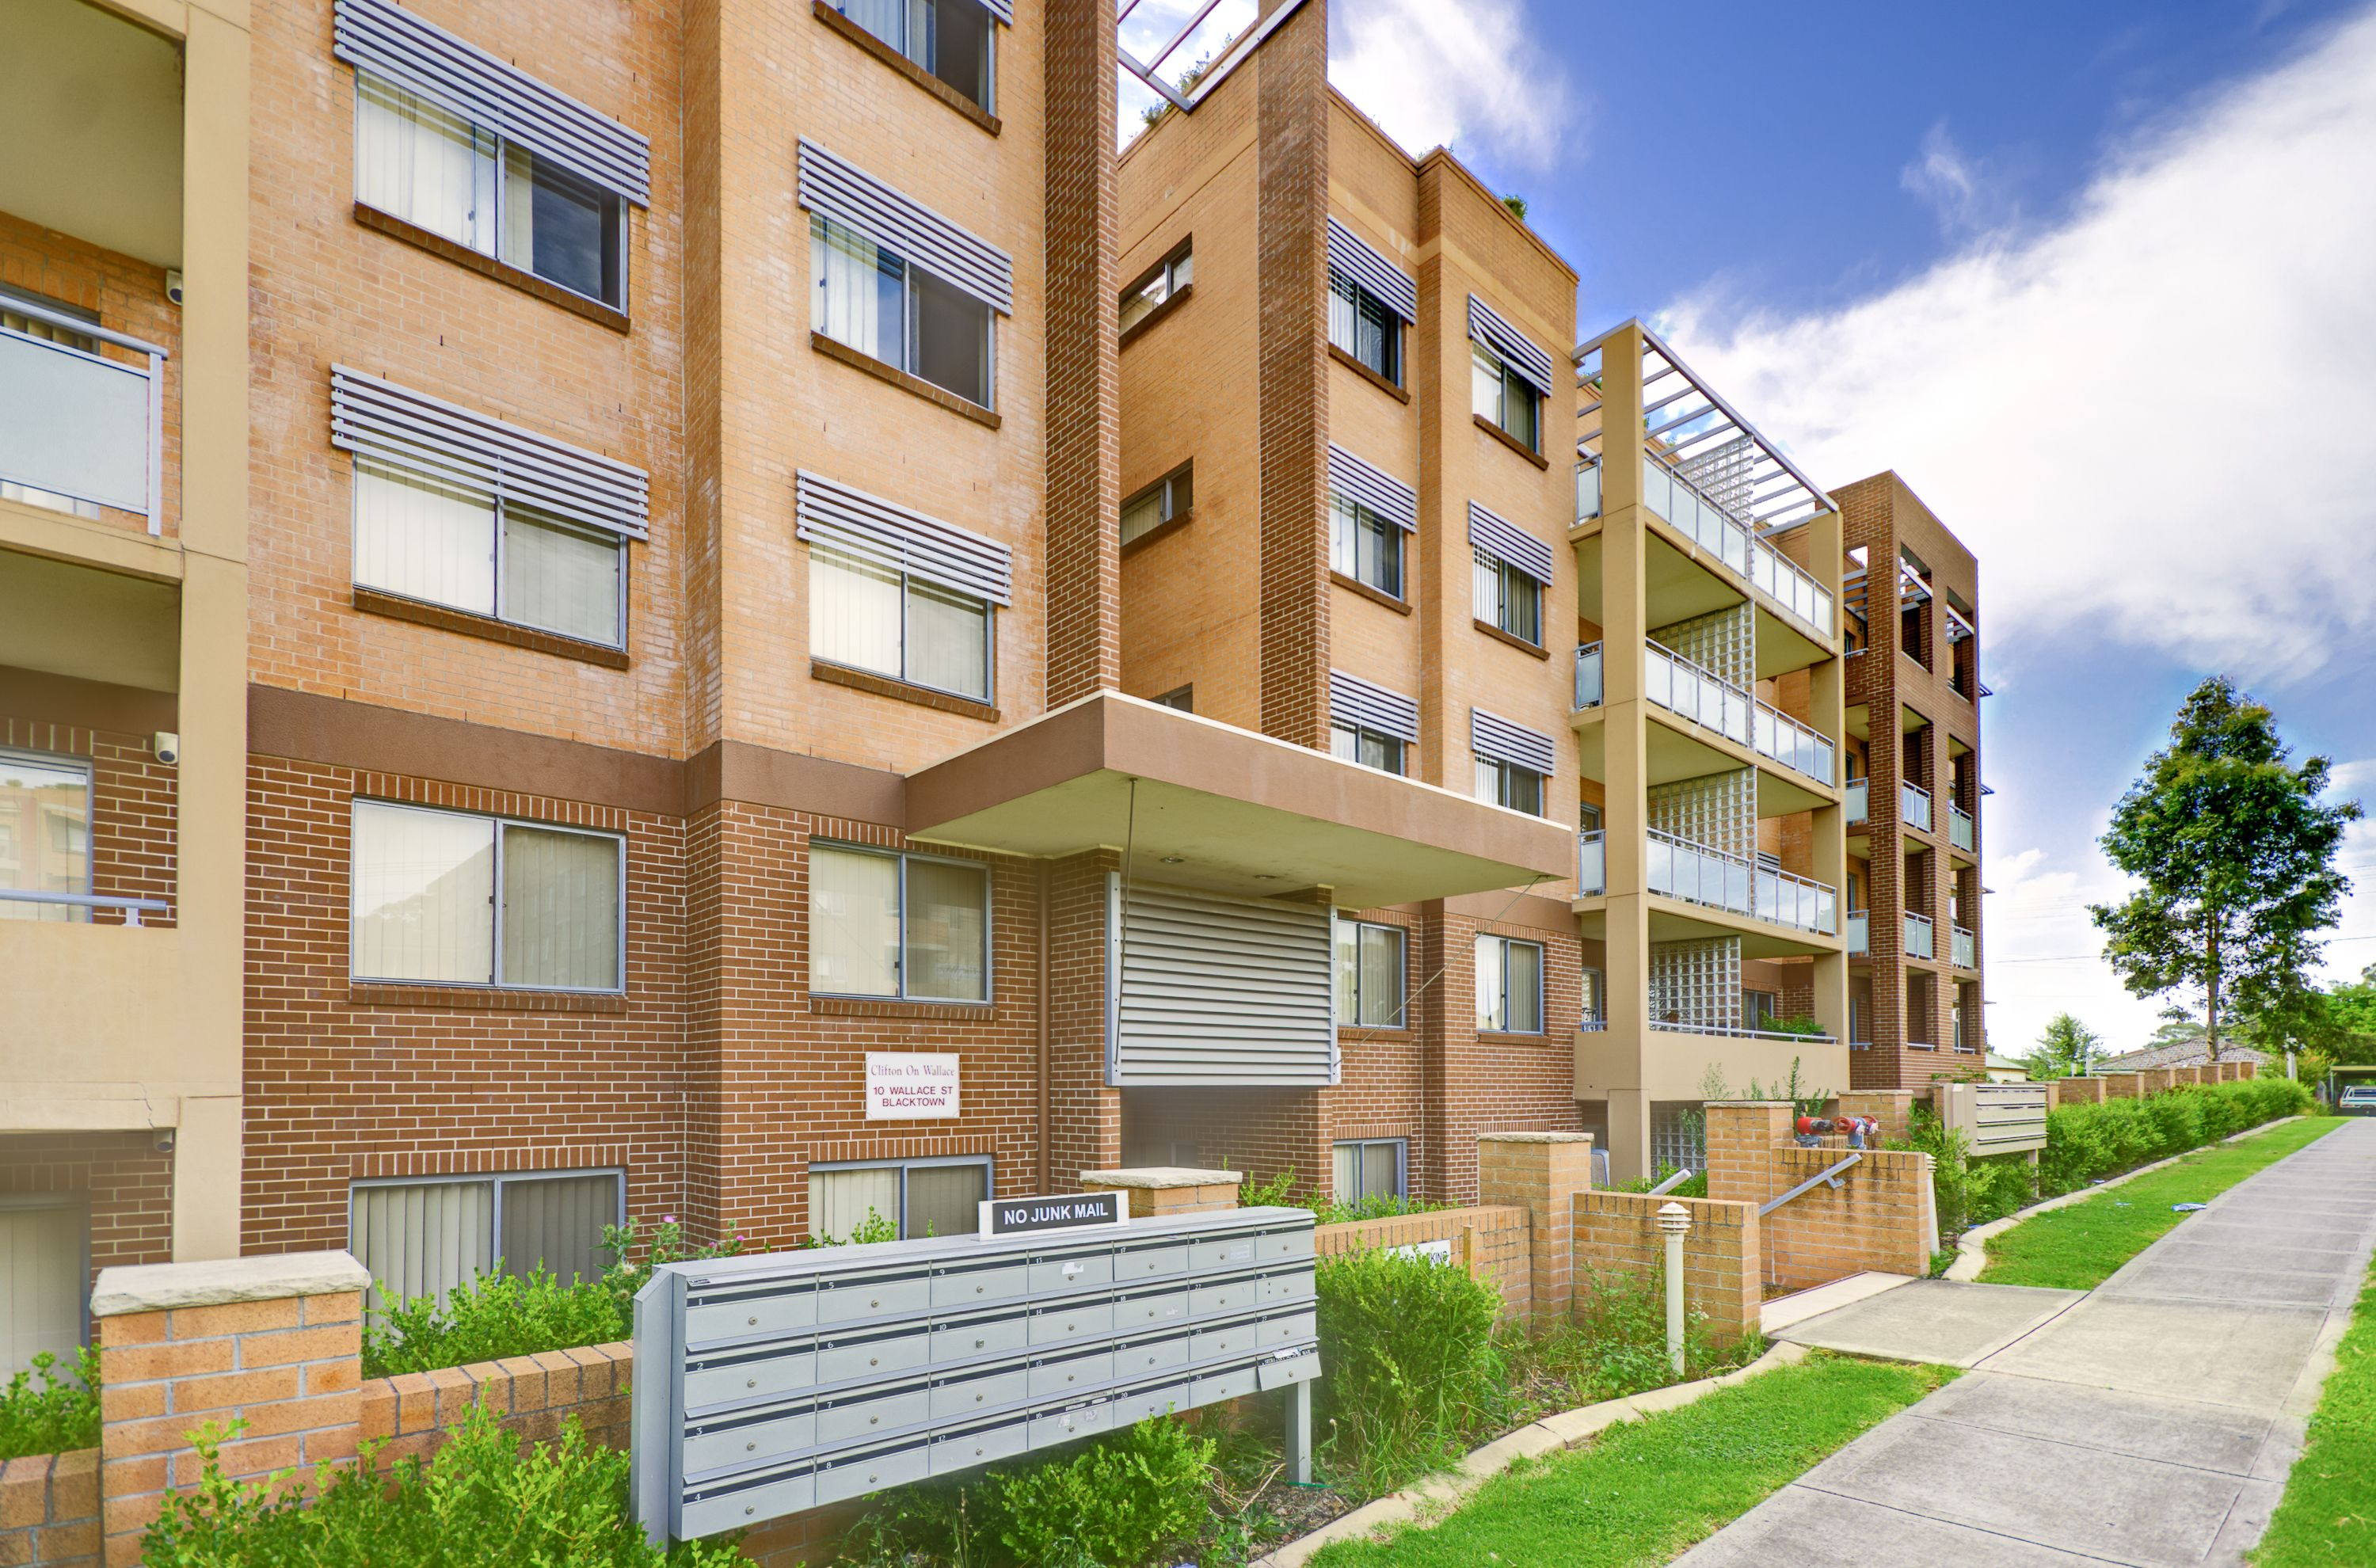 48/8-18 Wallace Street, Blacktown NSW 2148